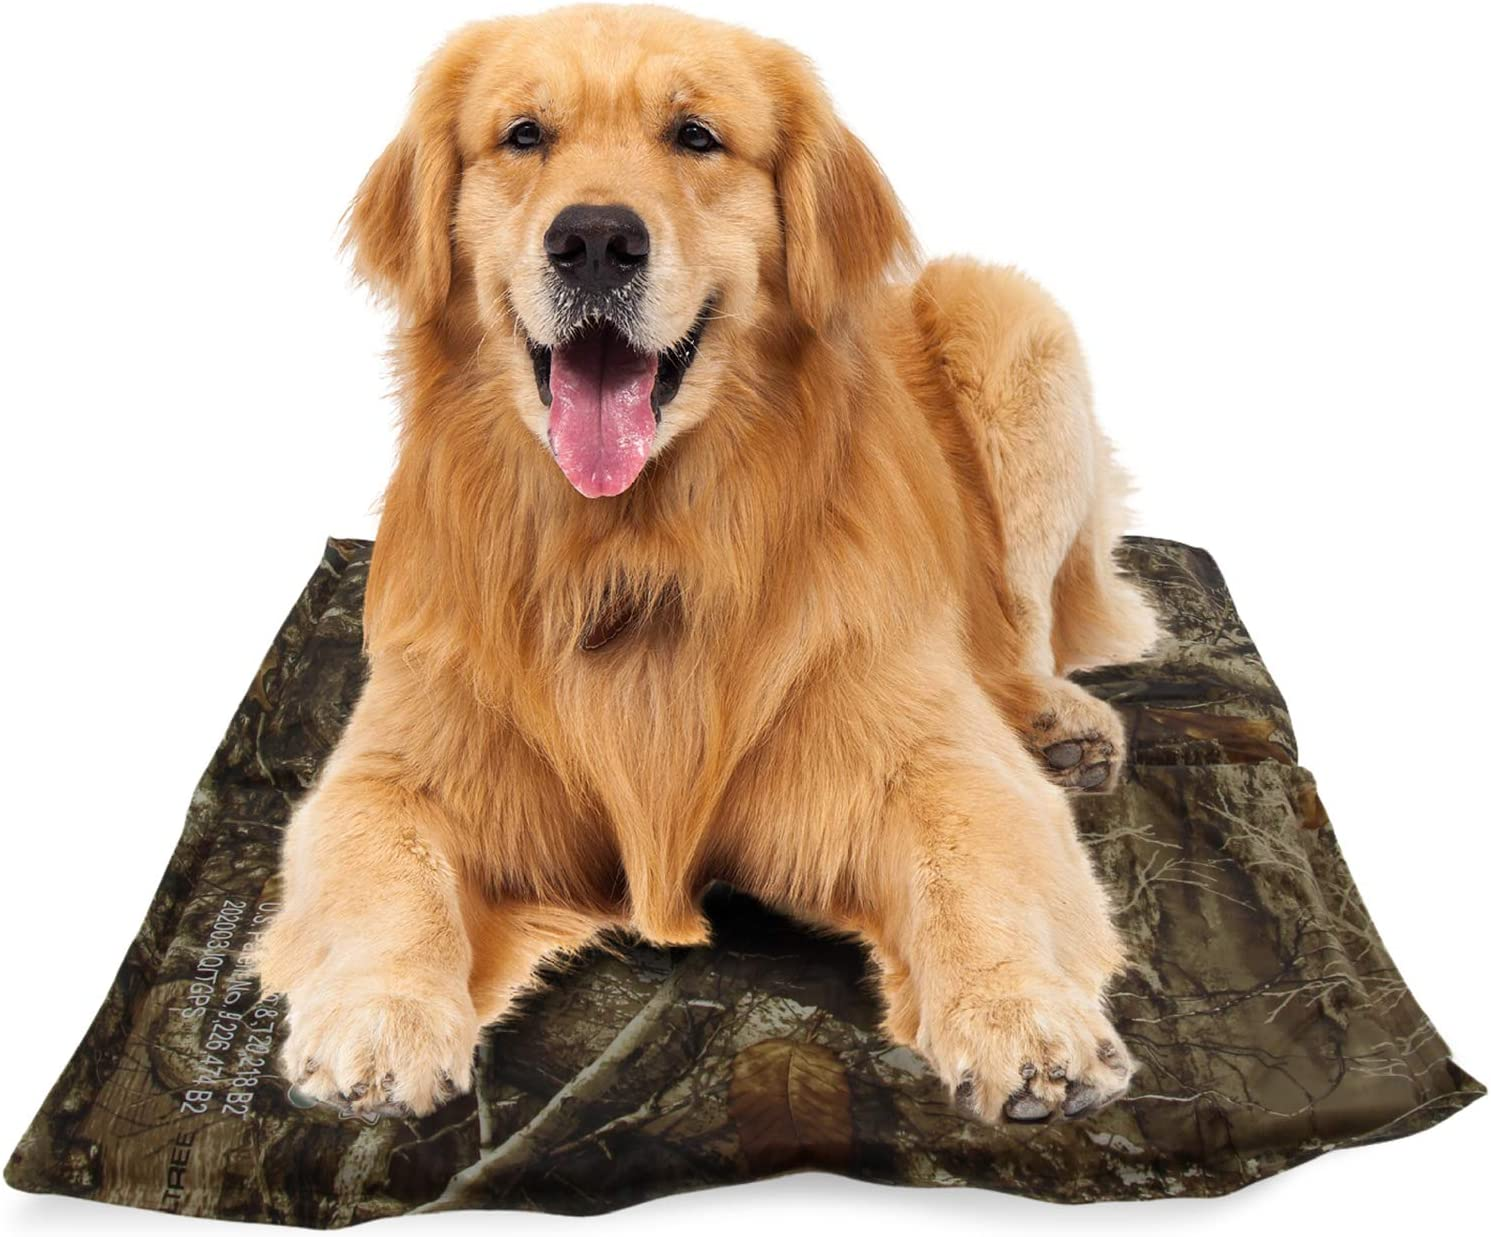 CHILLZ Cooling Pad for Dogs – Pet Cooling Mat Featuring Realtree Edge Camo Pattern – Dog Cooling Mat